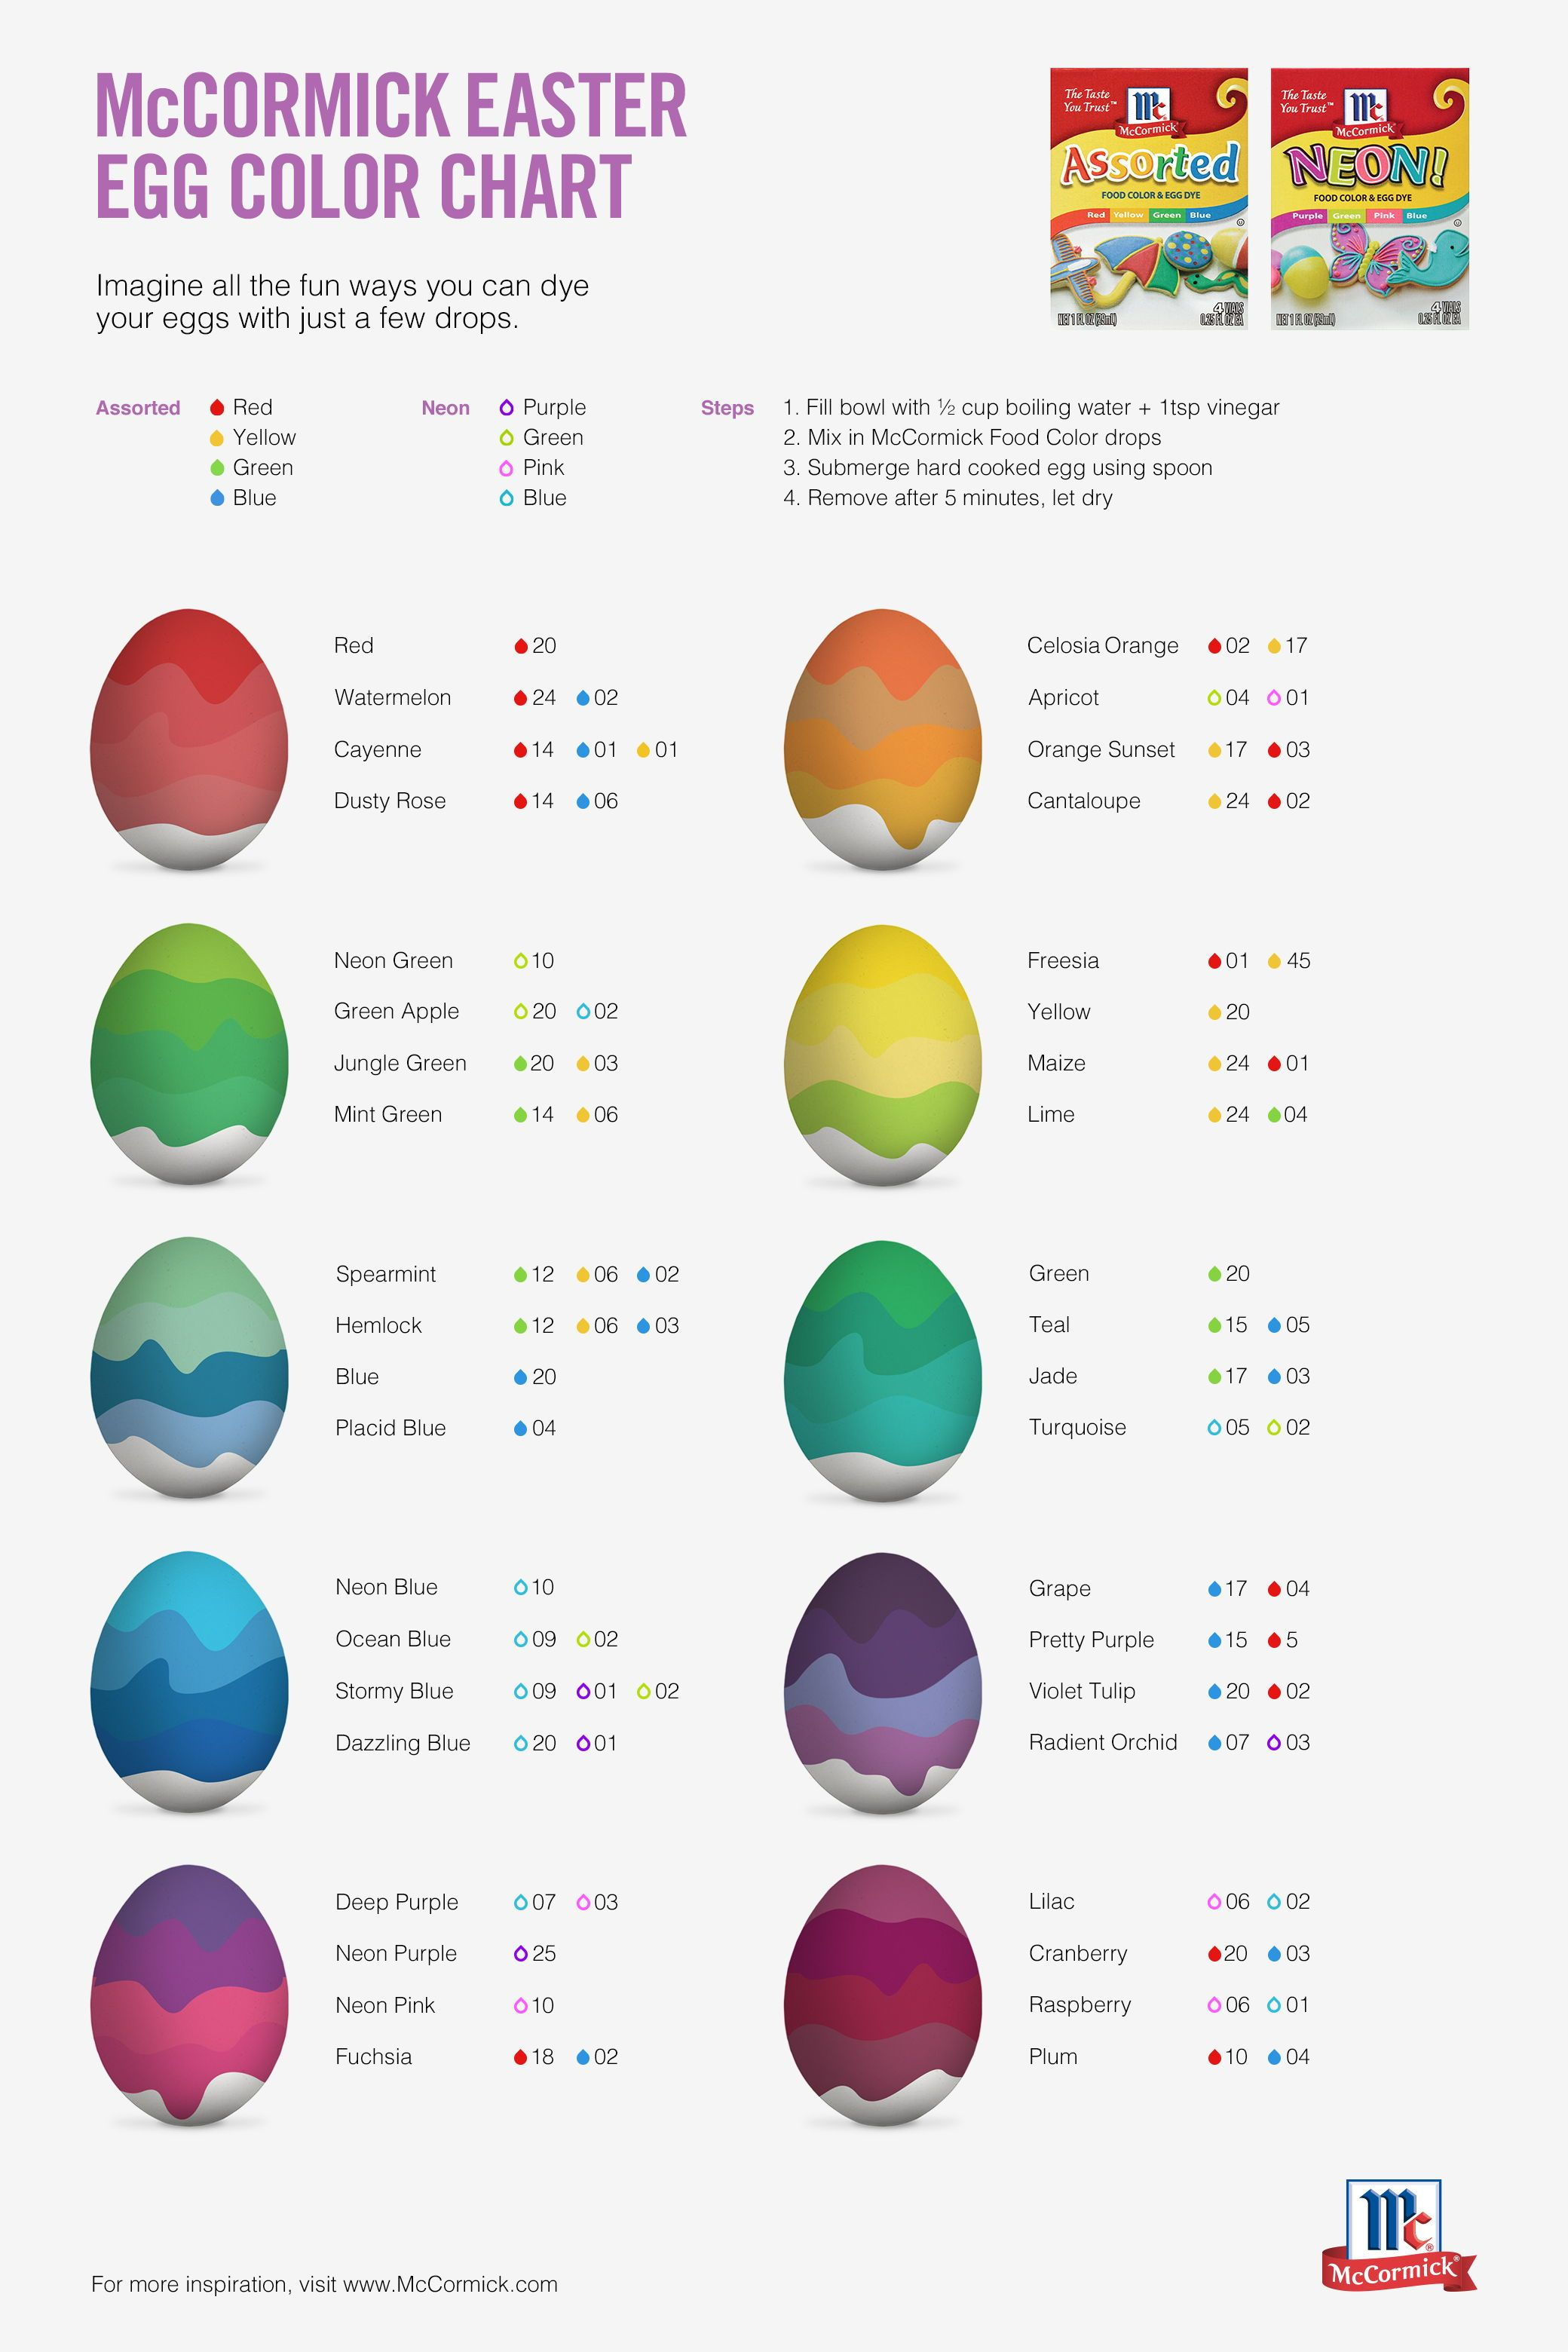 Diy Easter Egg Decorating For Every Color Of The Rainbow Made Easy With The Mccormick Easter Egg Col Dying Easter Eggs Diy Easter Eggs Dye Coloring Easter Eggs